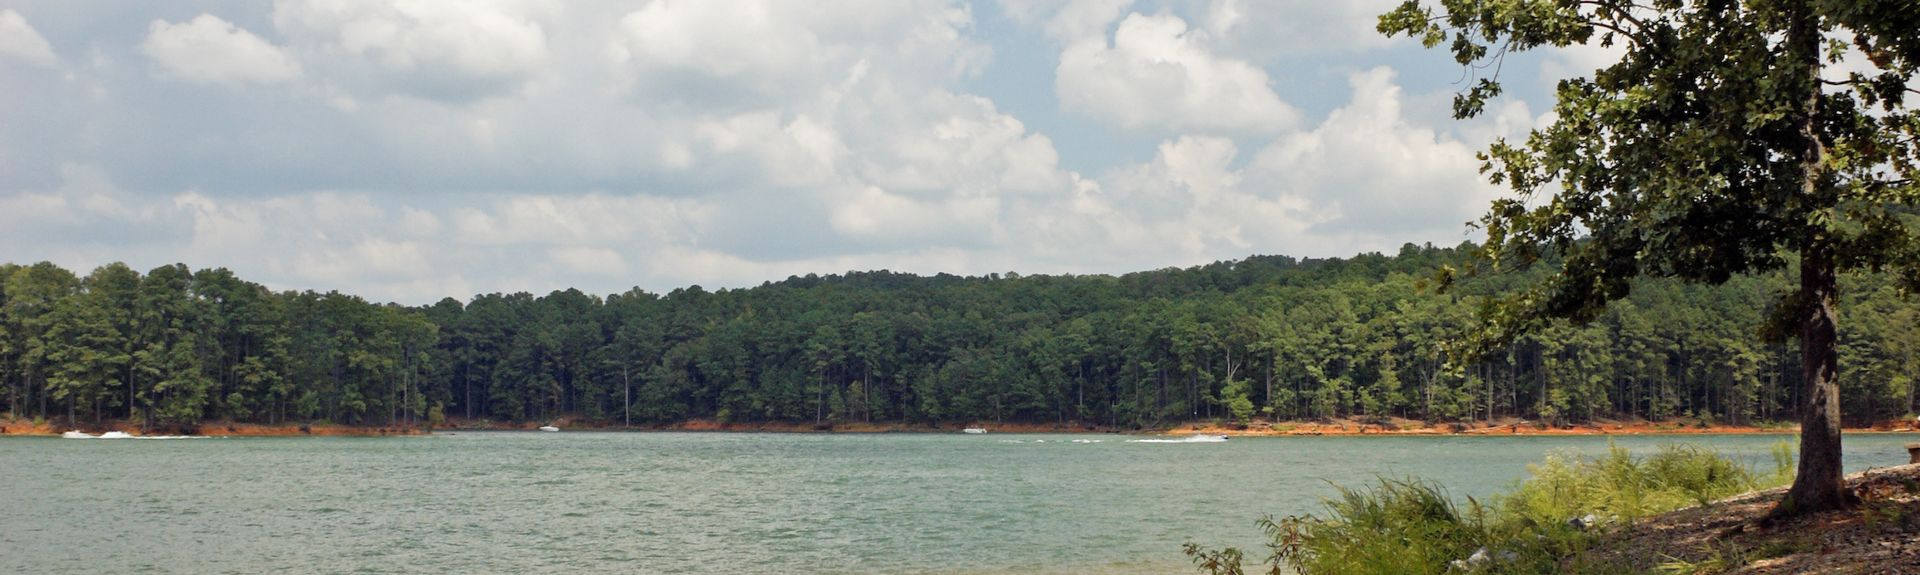 Allatoona Lake, Geórgia, Estados Unidos